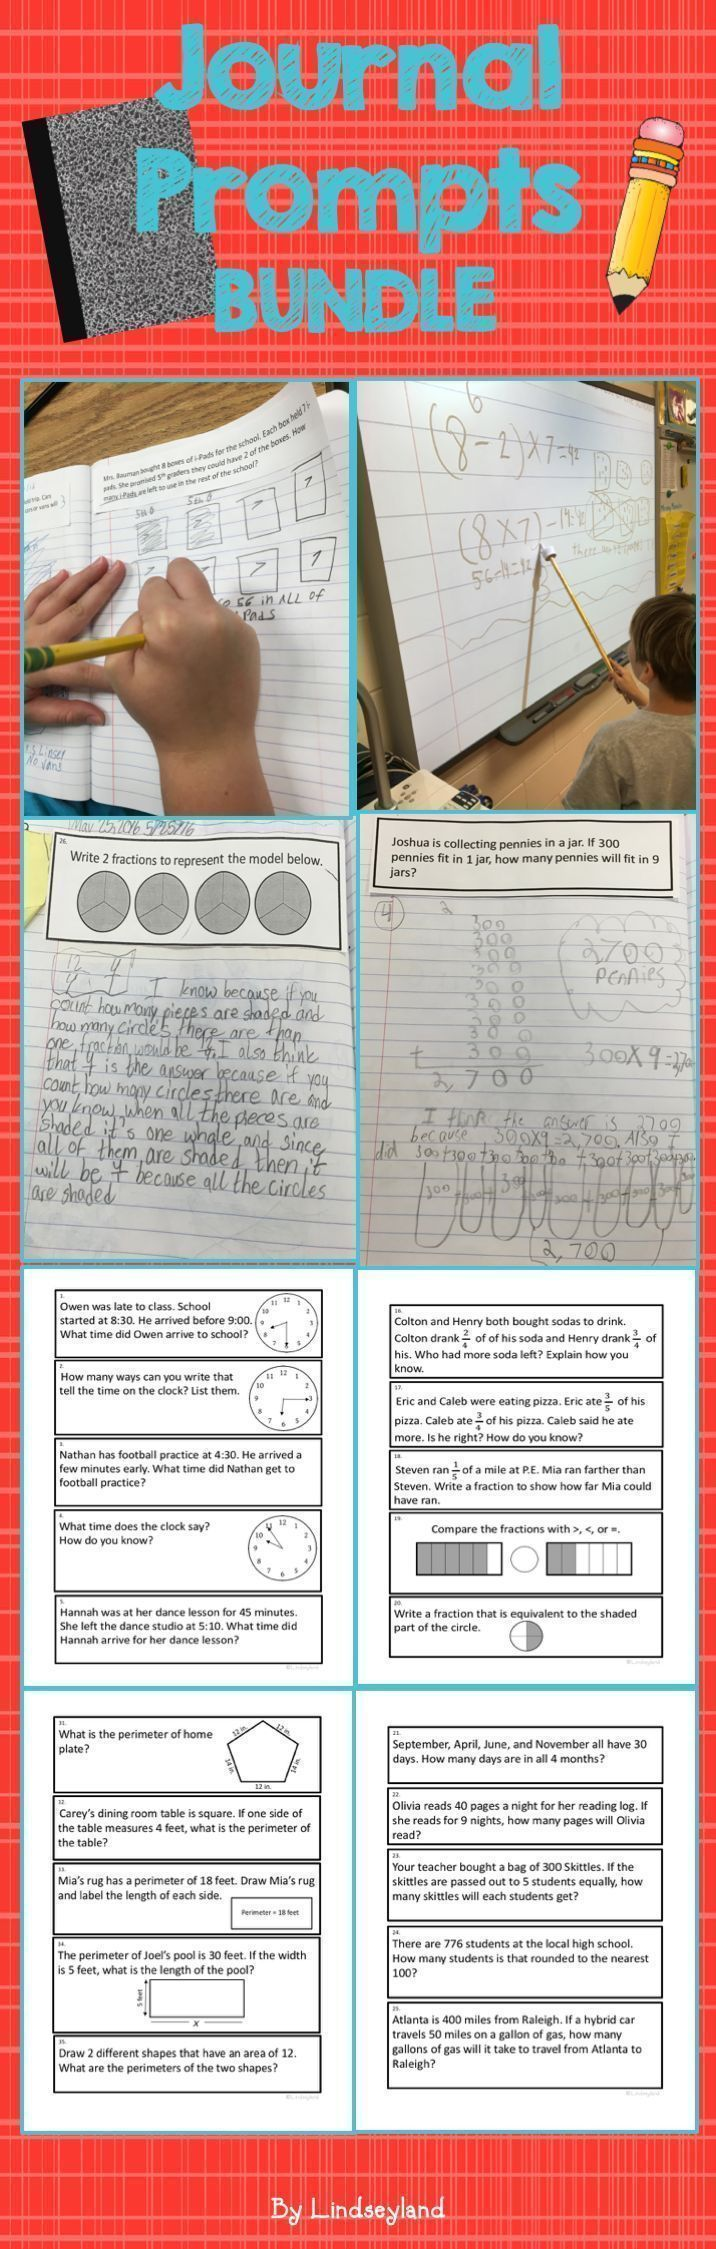 Add daily problem solving to your classroom with 3rd Math Journal Prompts. Designed to fit in composition notebooks and CCSS aligned. Includes 155 prompts and student scale. Made by Lindseyland.